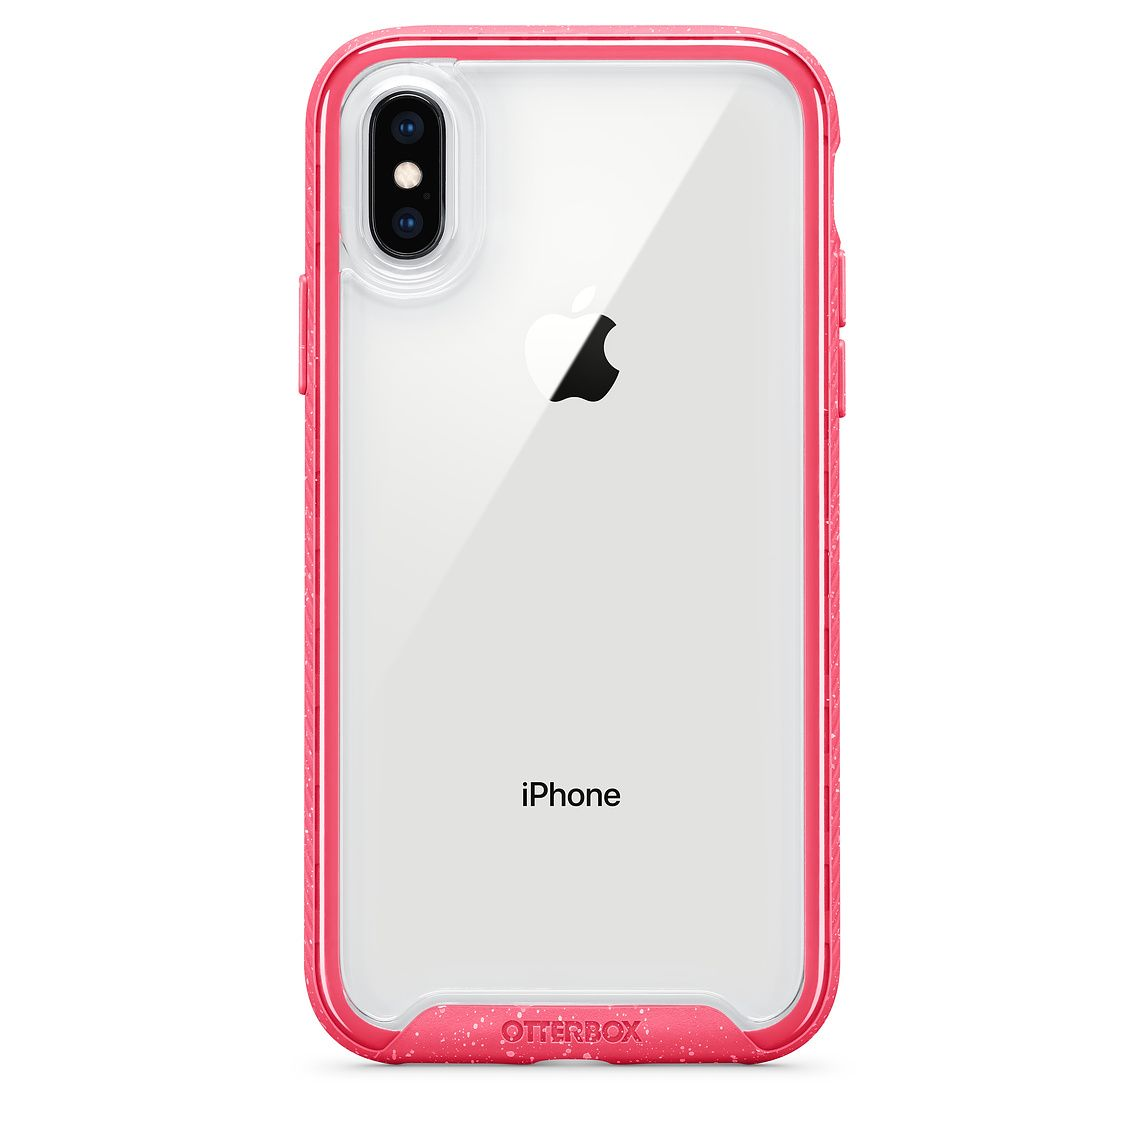 Otterbox Traction Series Case For Iphone Xs Max Iphone Iphone Cases Iphone Phone Cases